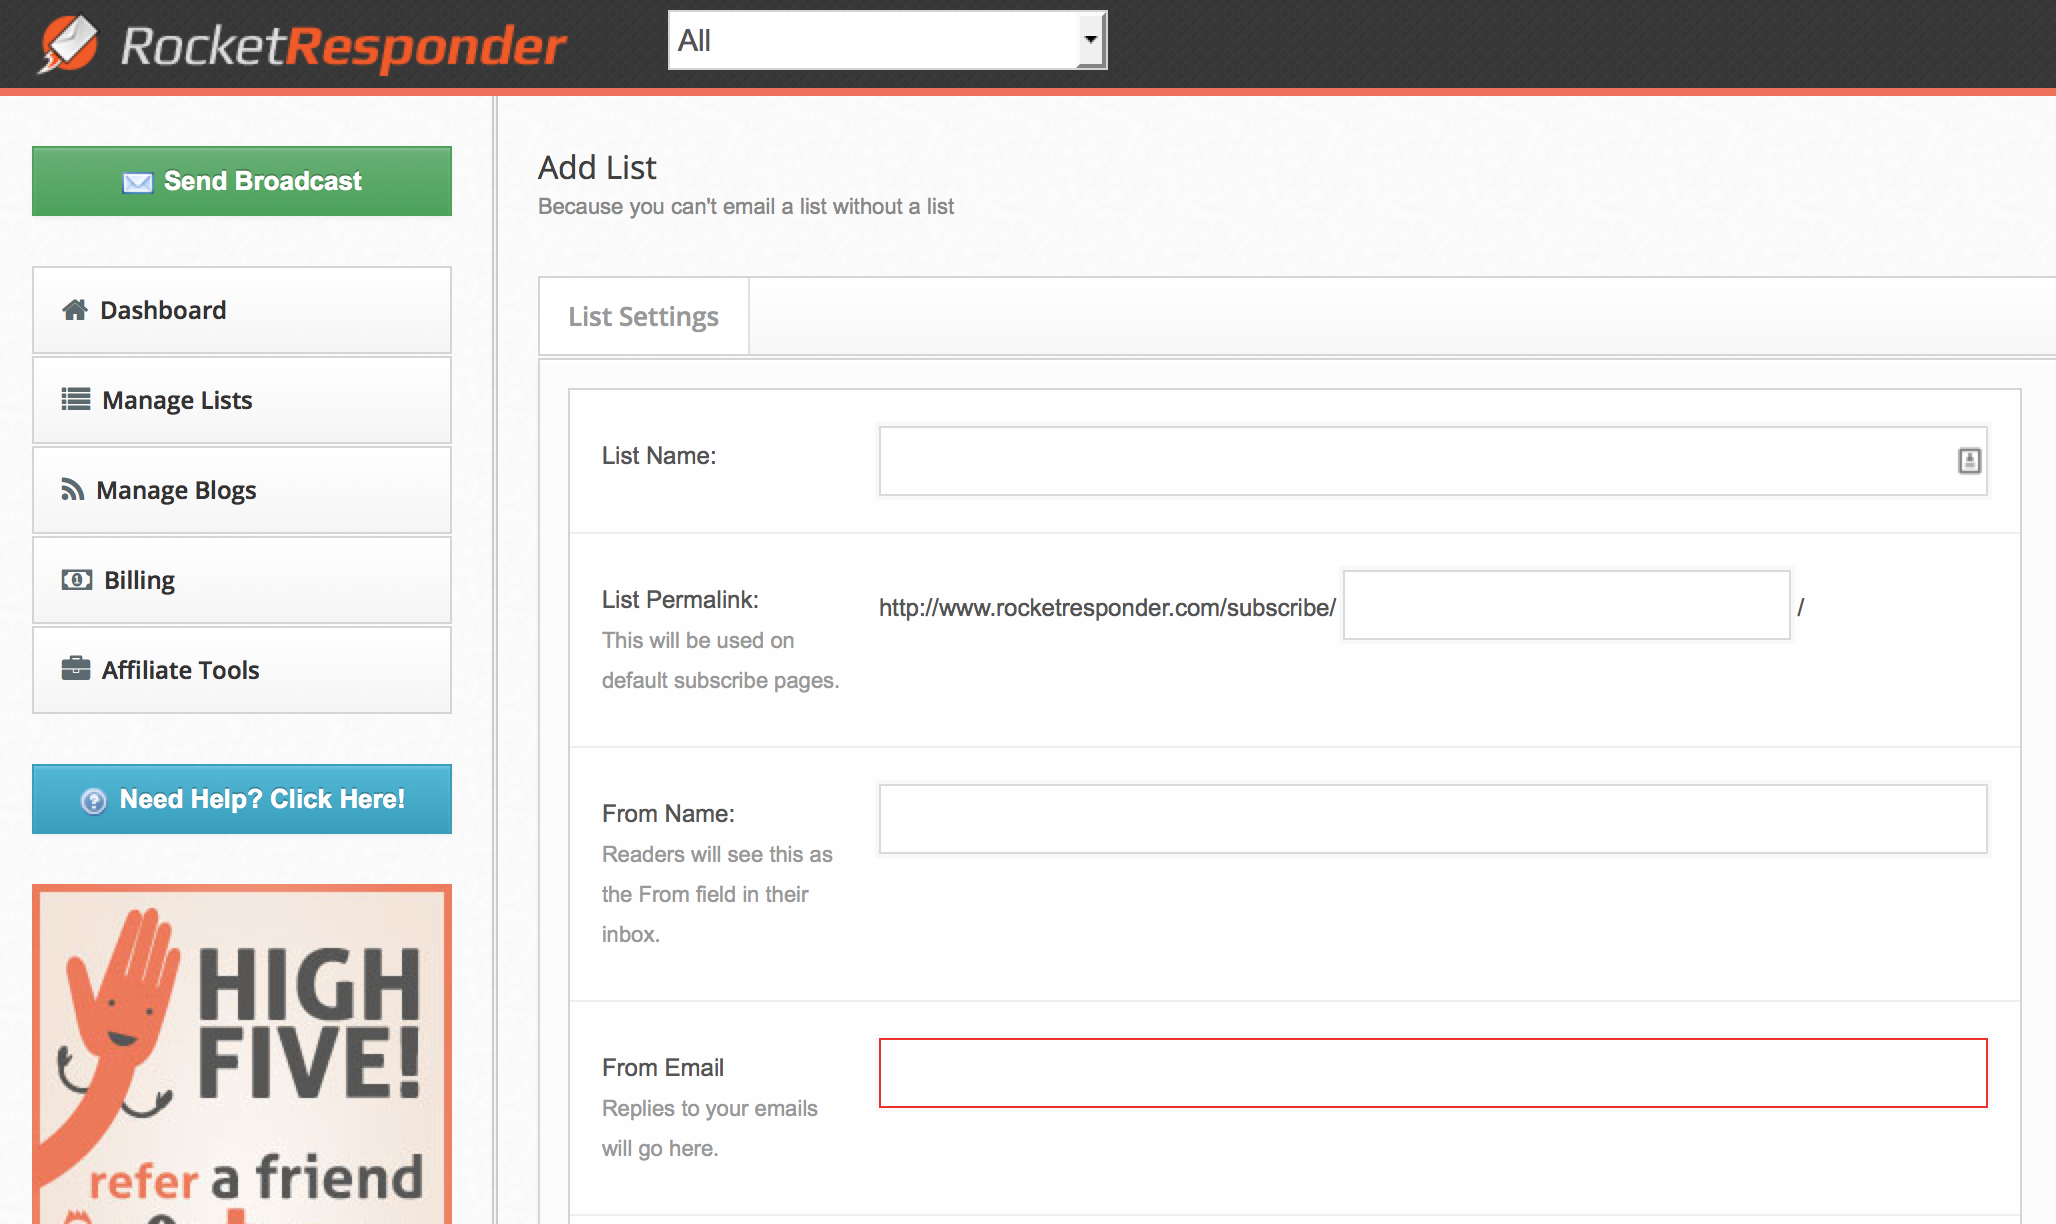 adding a new list with RocketResponder